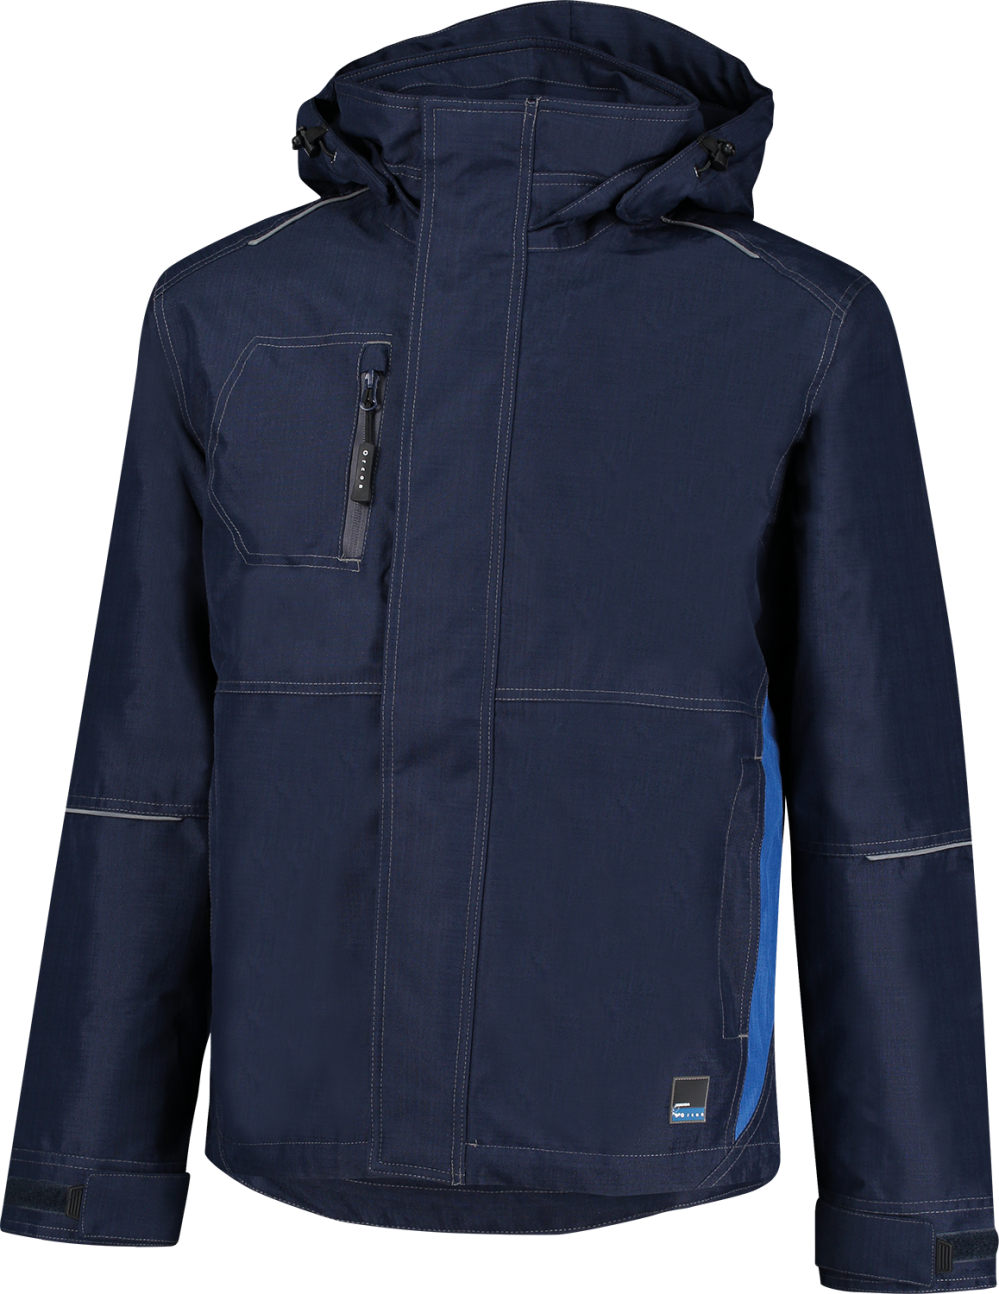 96010 Troy jack navy korenblauw